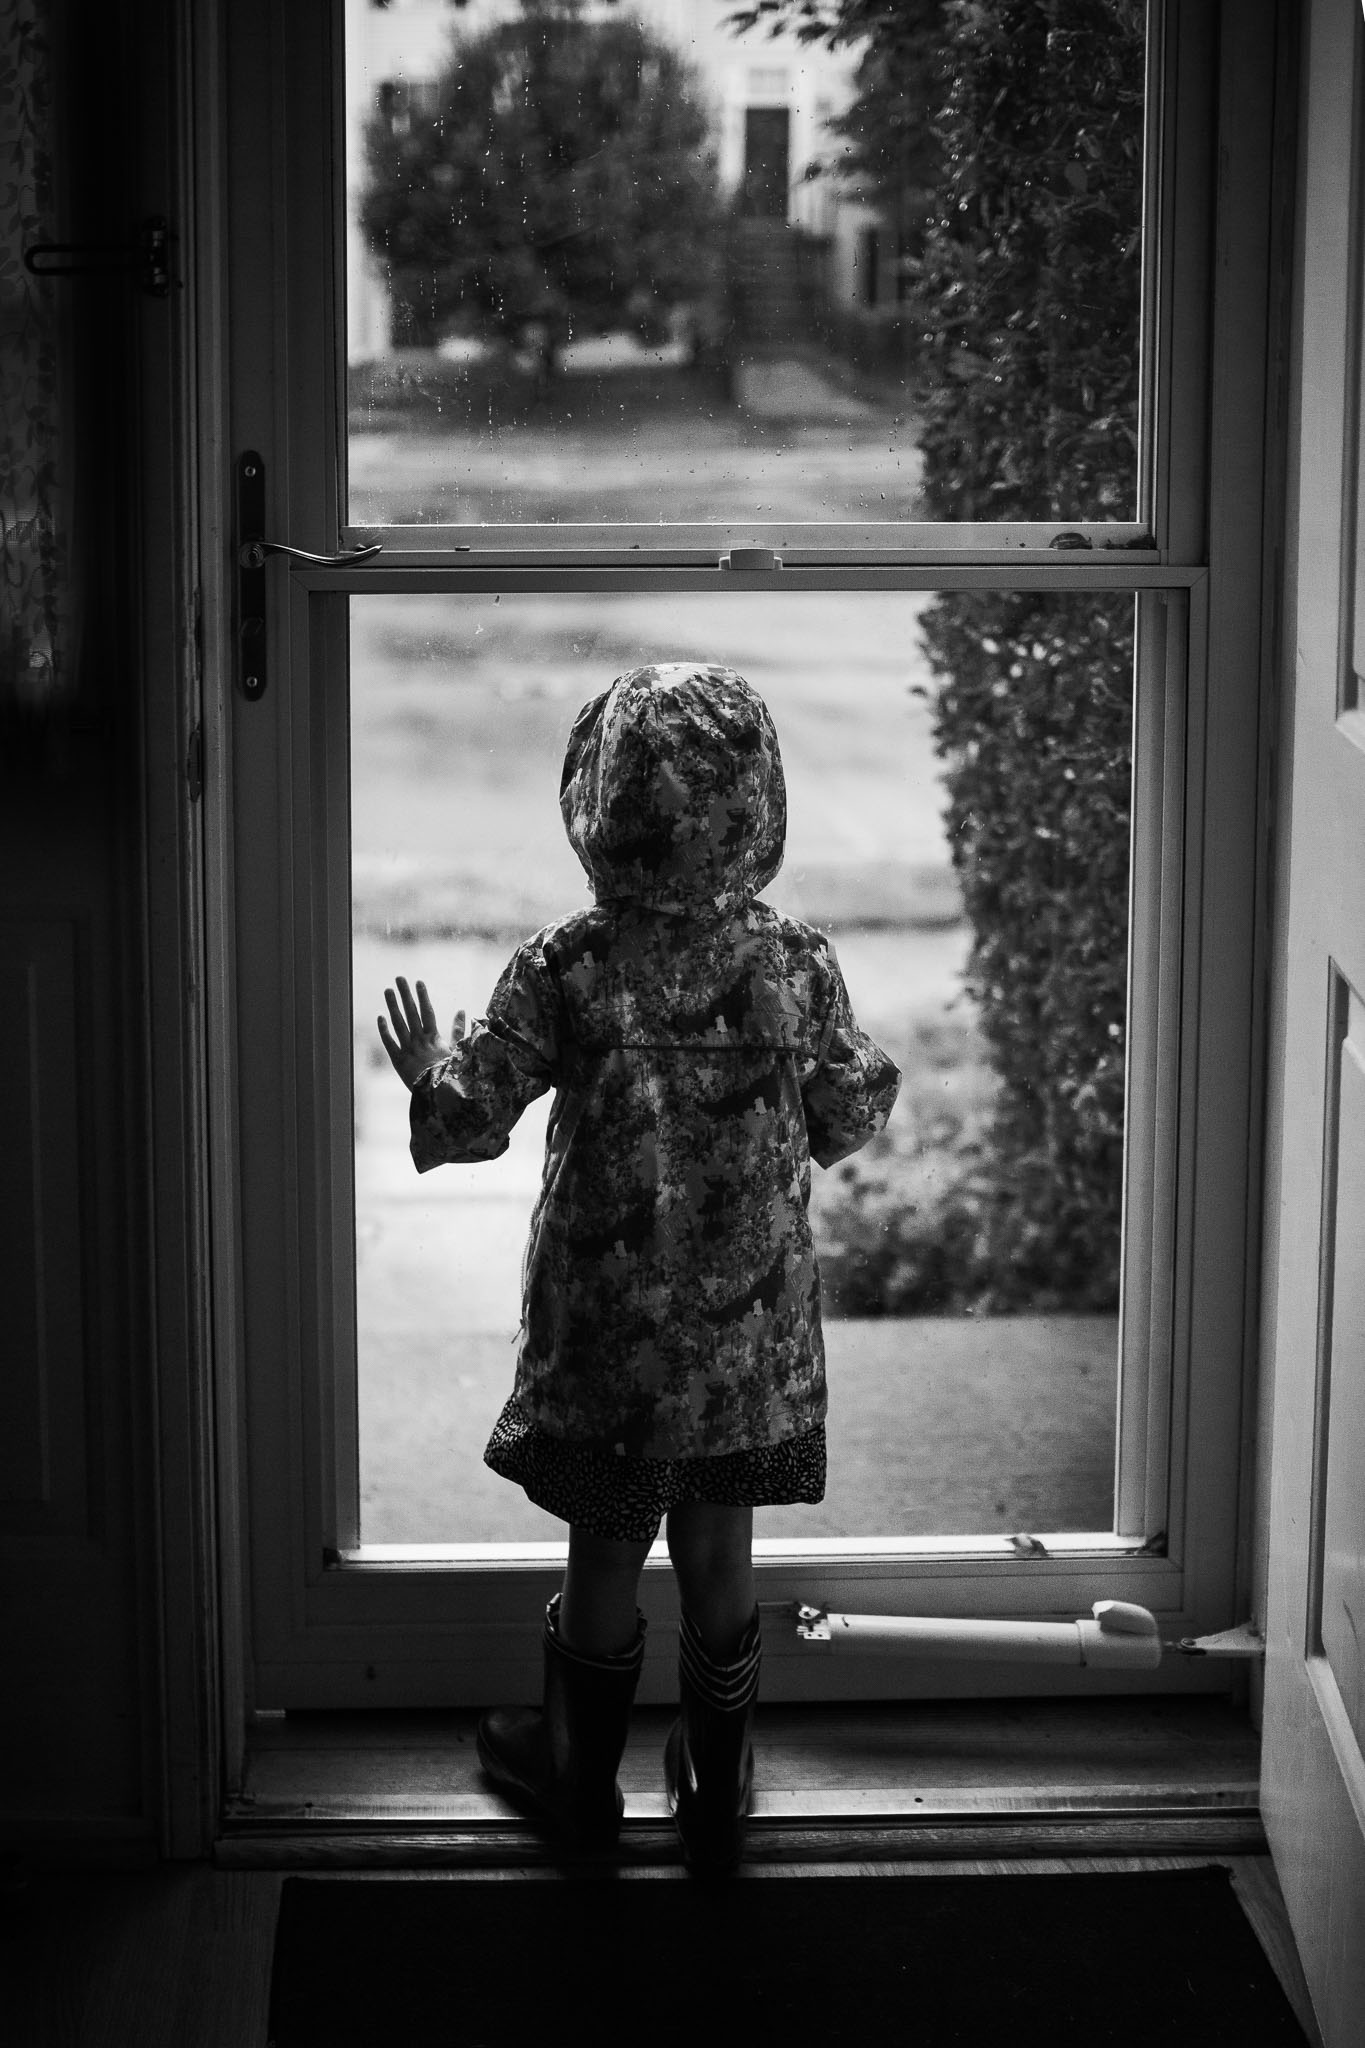 Black and white; girl in a raincoat and rain boots presses her hands and face against a glass door, preparing to go outside in the rain